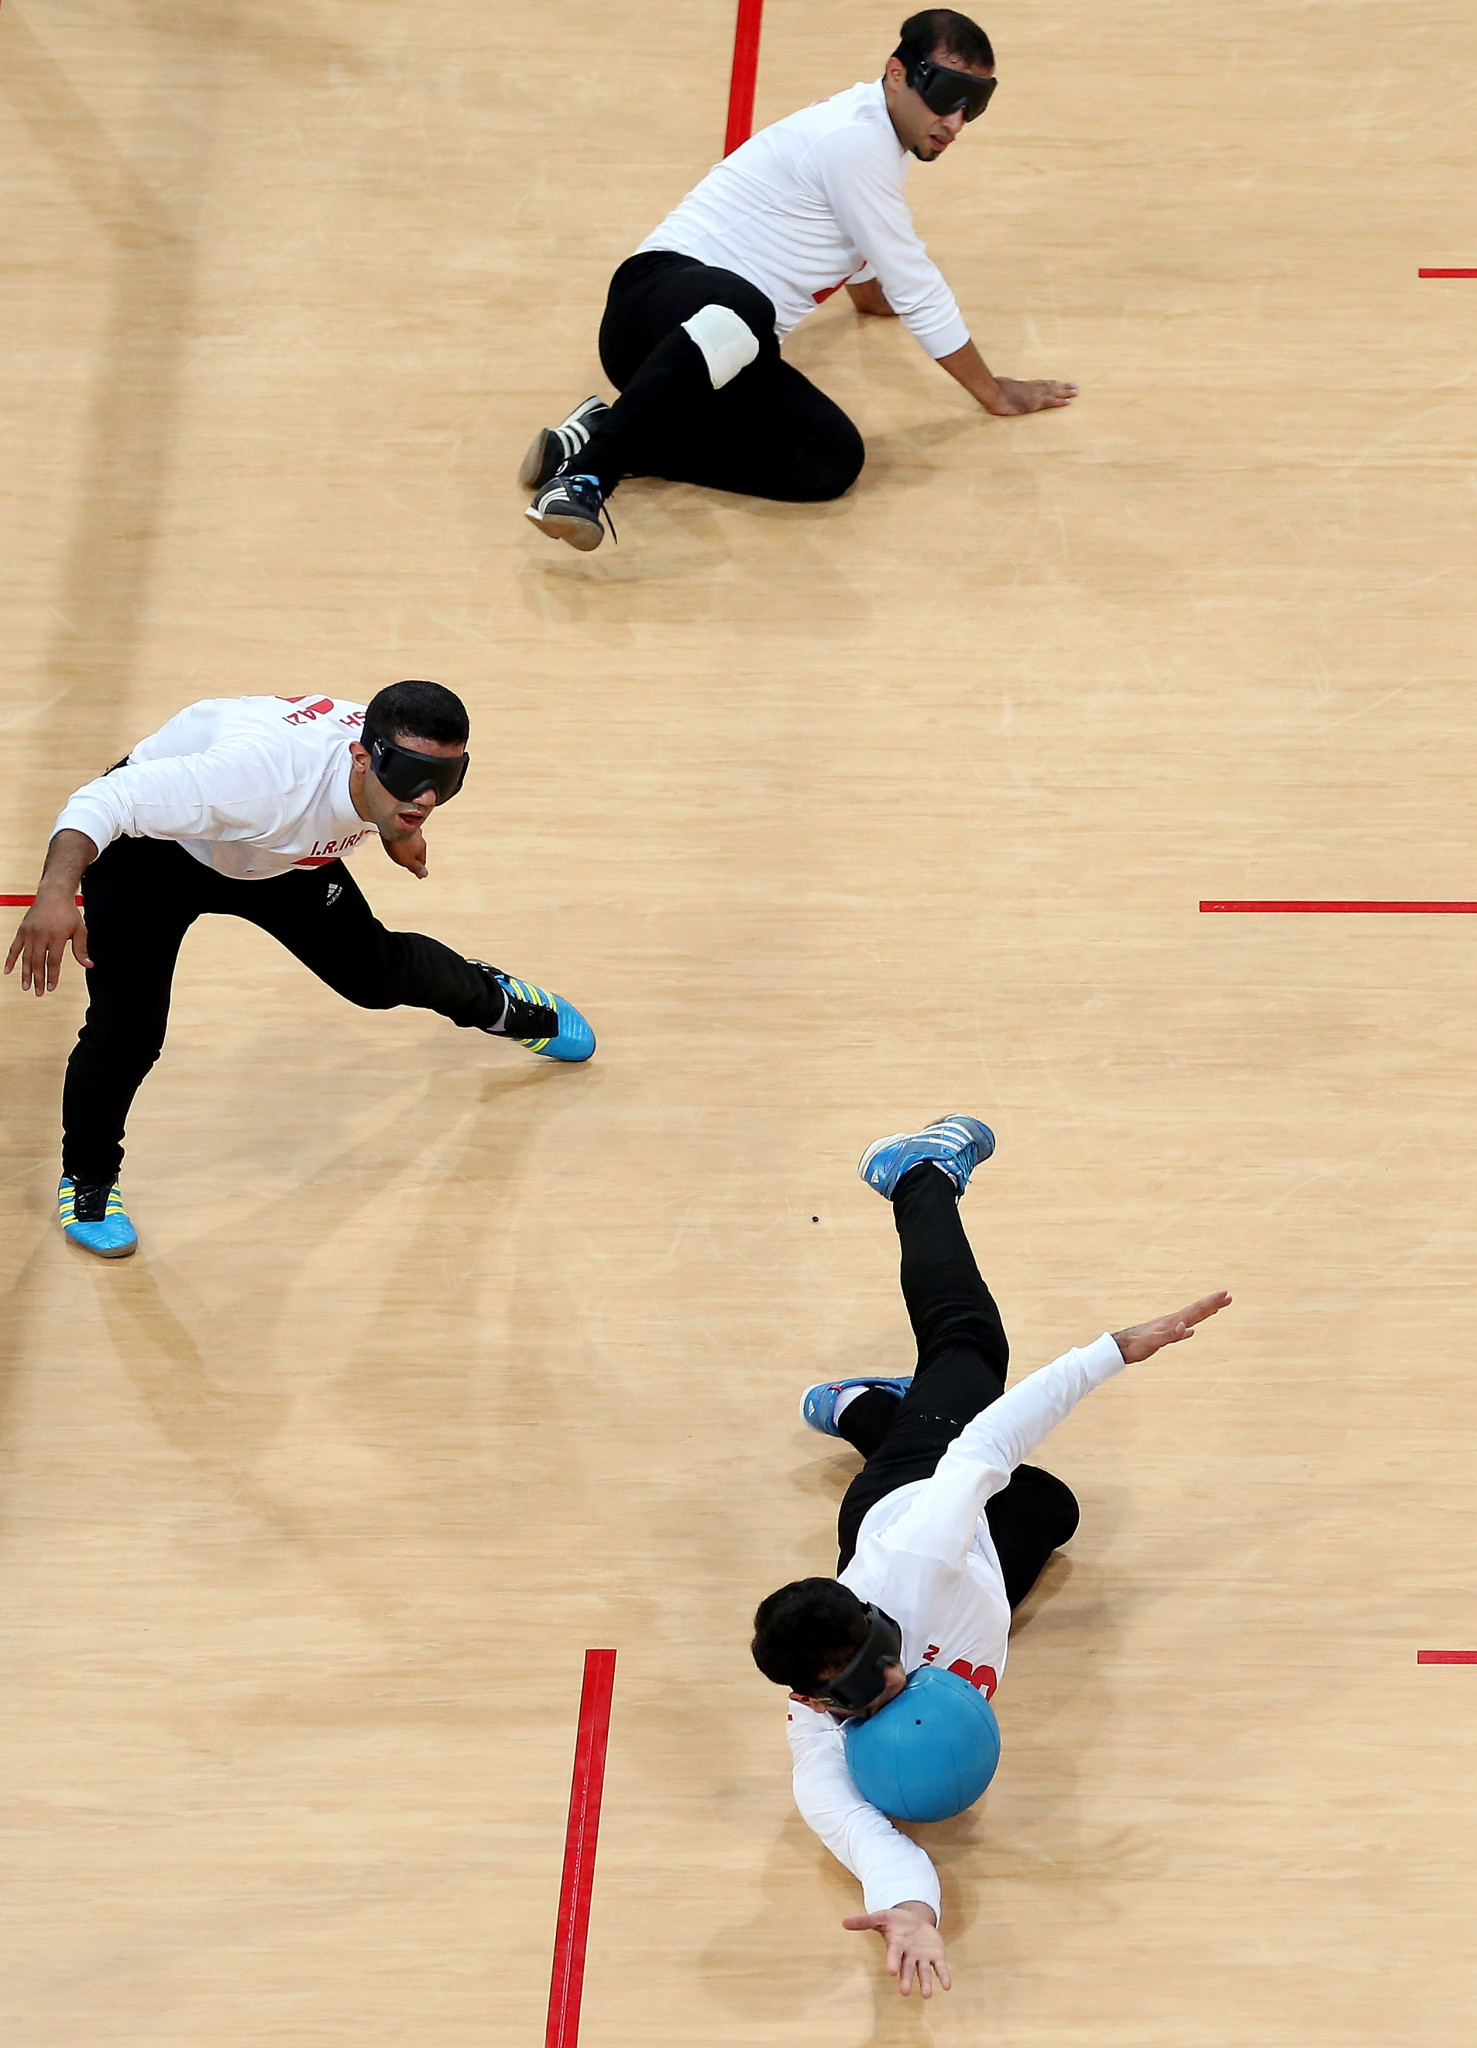 IBSA is hoping to grow goalball among African nations ©Getty Images